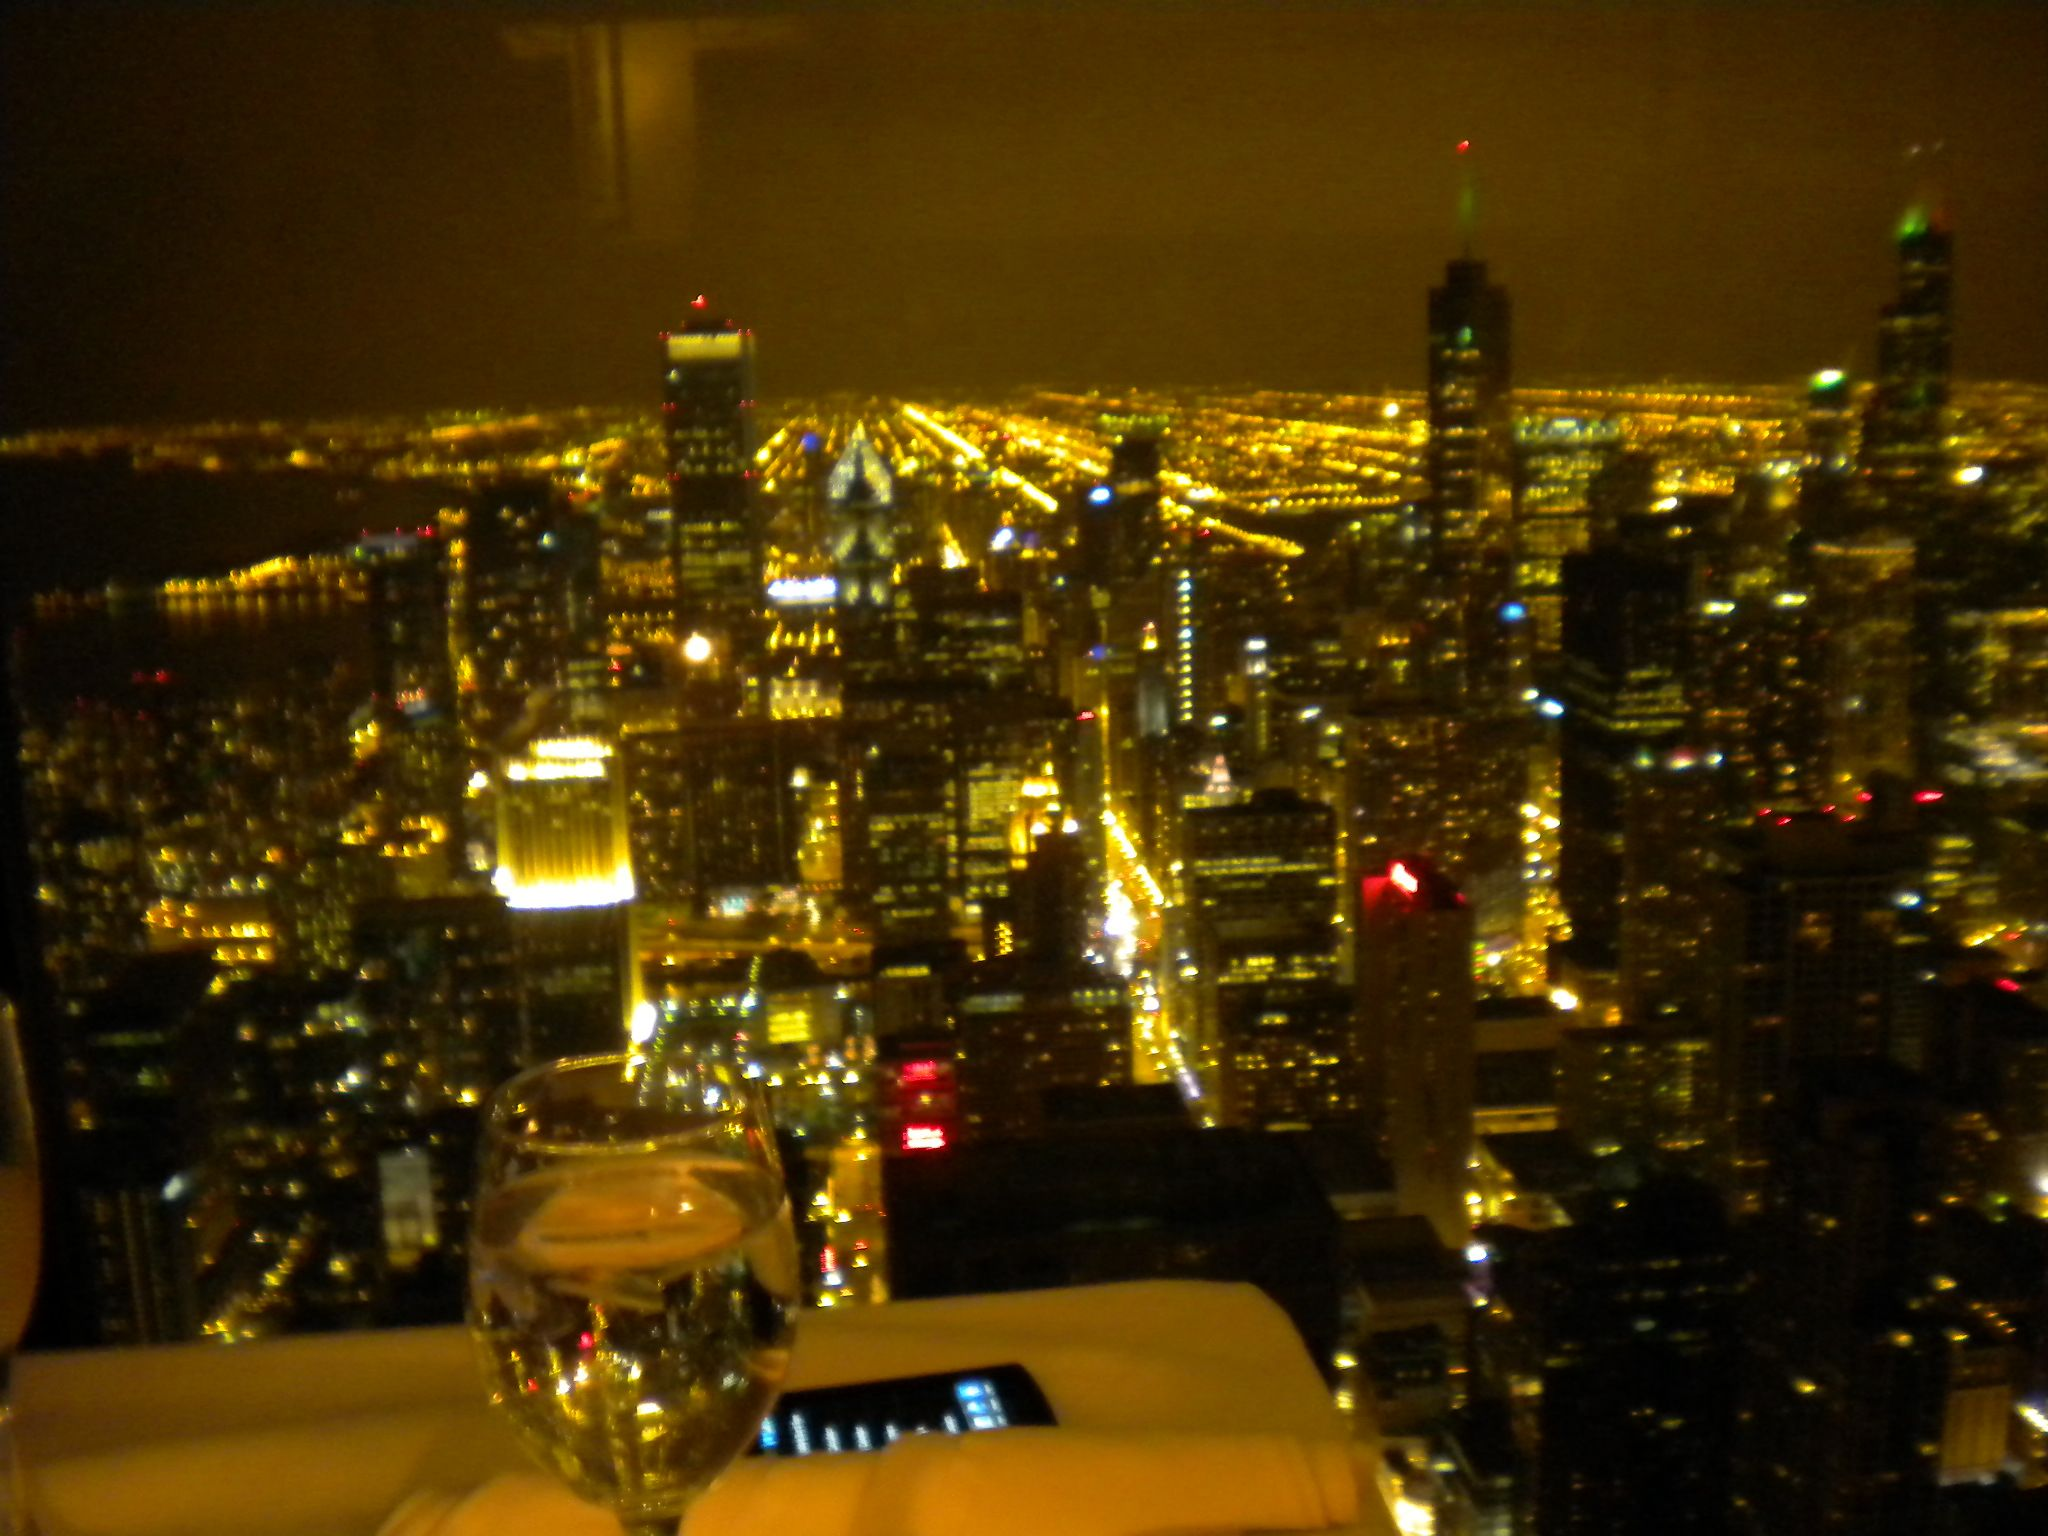 97th Floor Of A Wonderful Restaurant While On A Business Trip In Chicago, IL